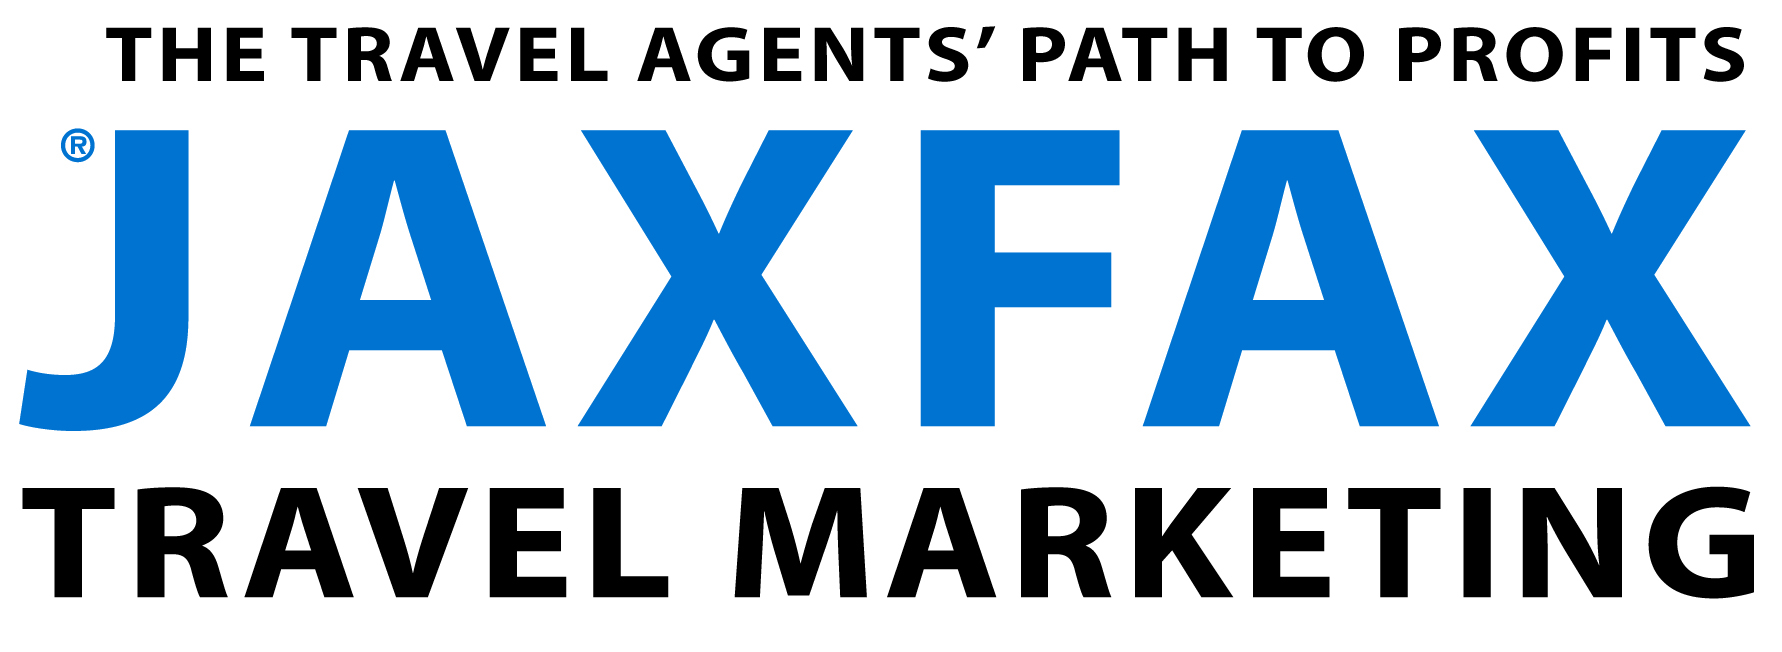 JAXFAX_MARKETING_LOGO